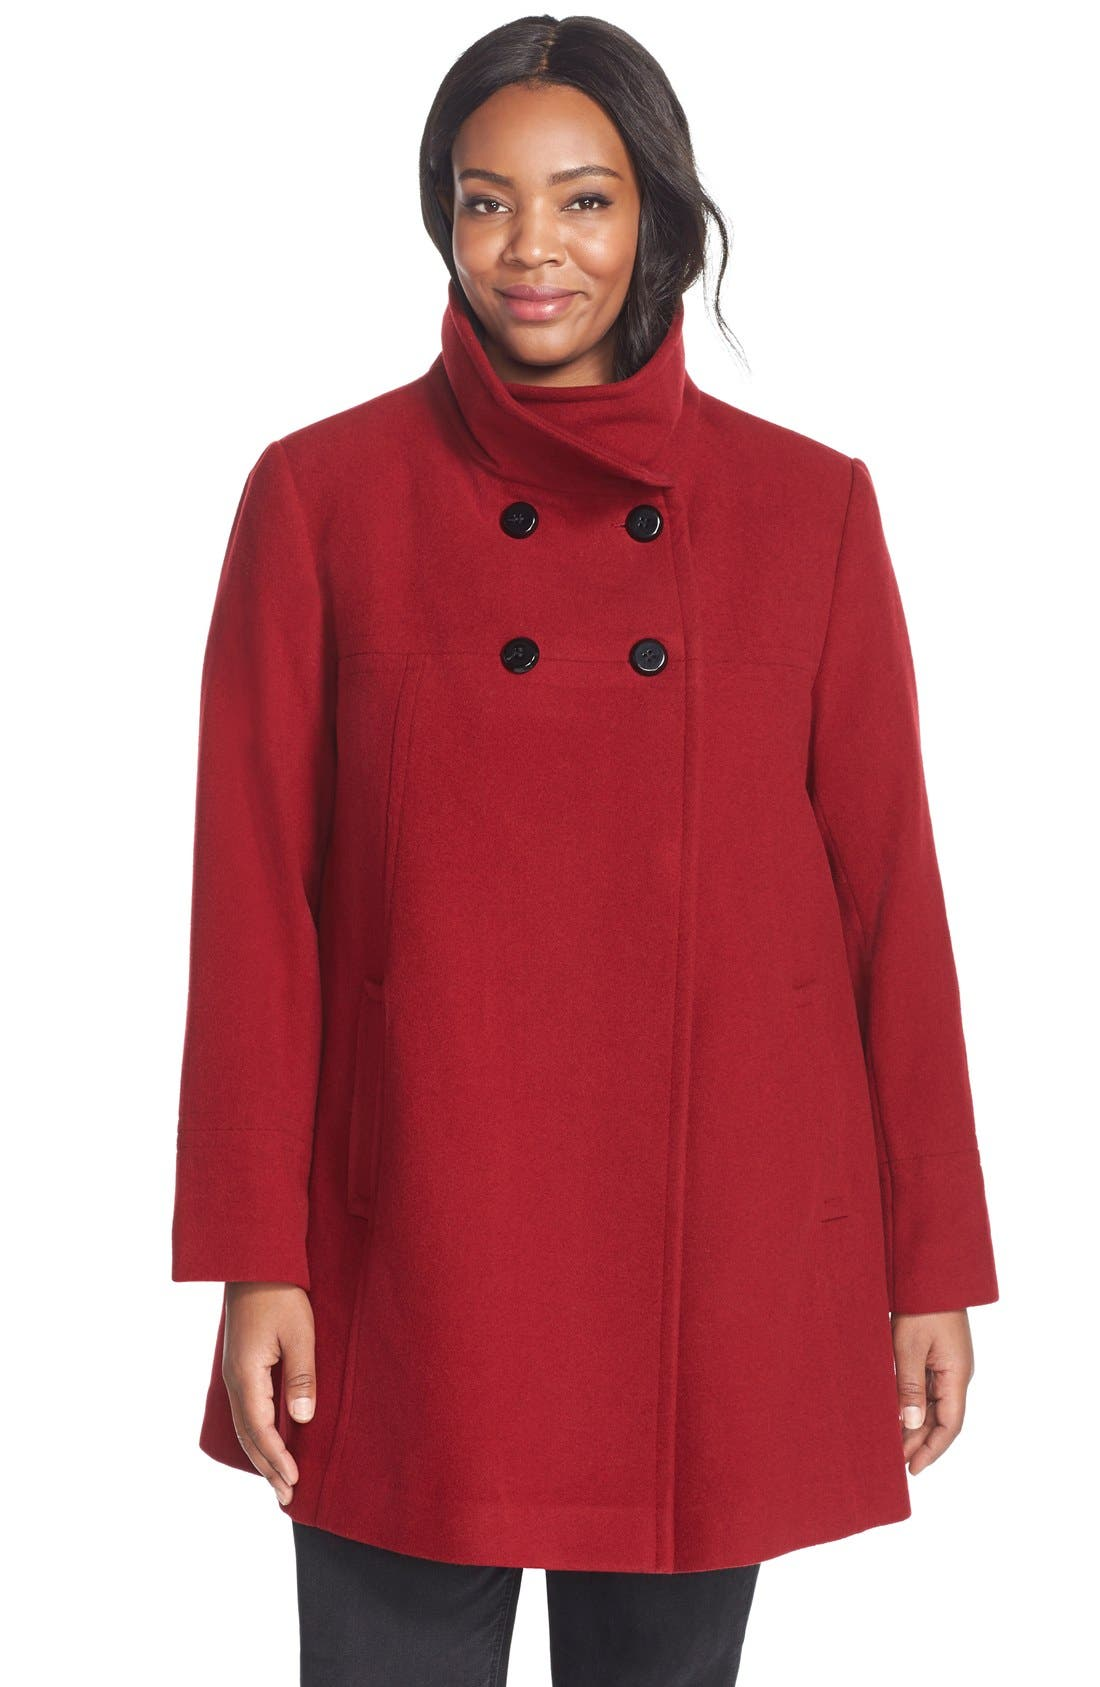 Main Image - Larry Levine Wool Blend A-Line Babydoll Coat (Plus Size)